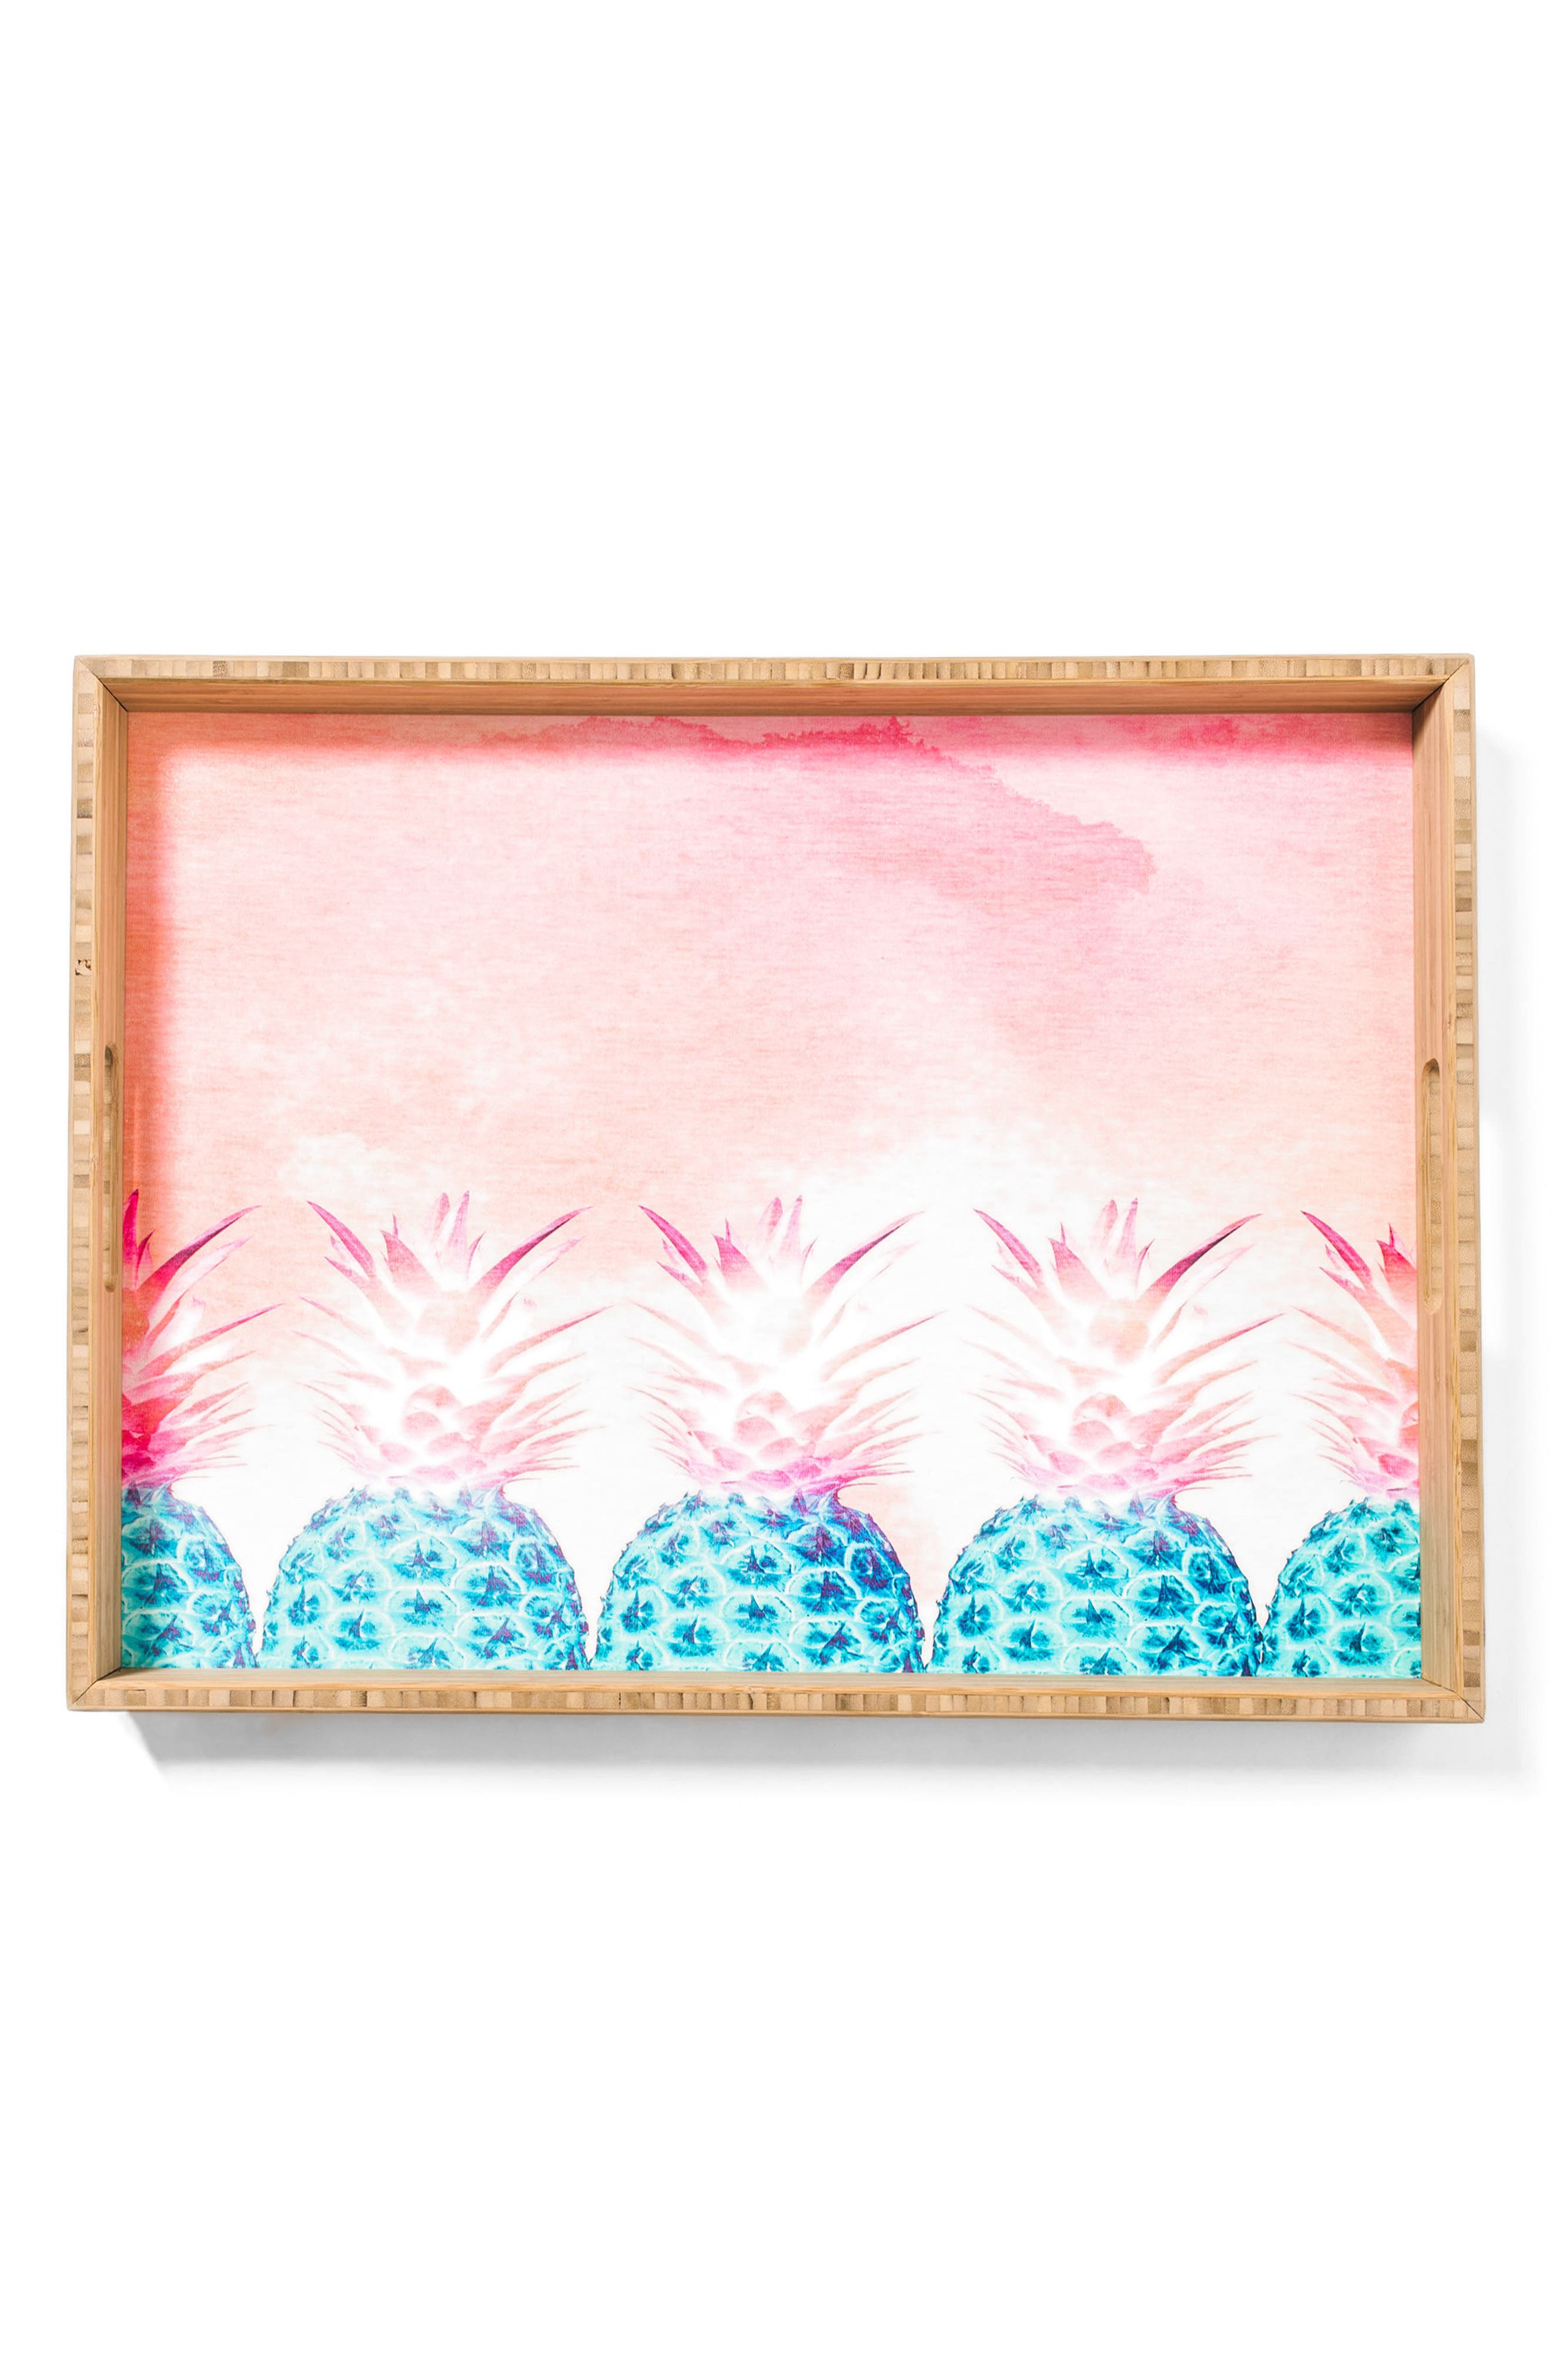 DENY Designs Pineapple Farm Serving Tray